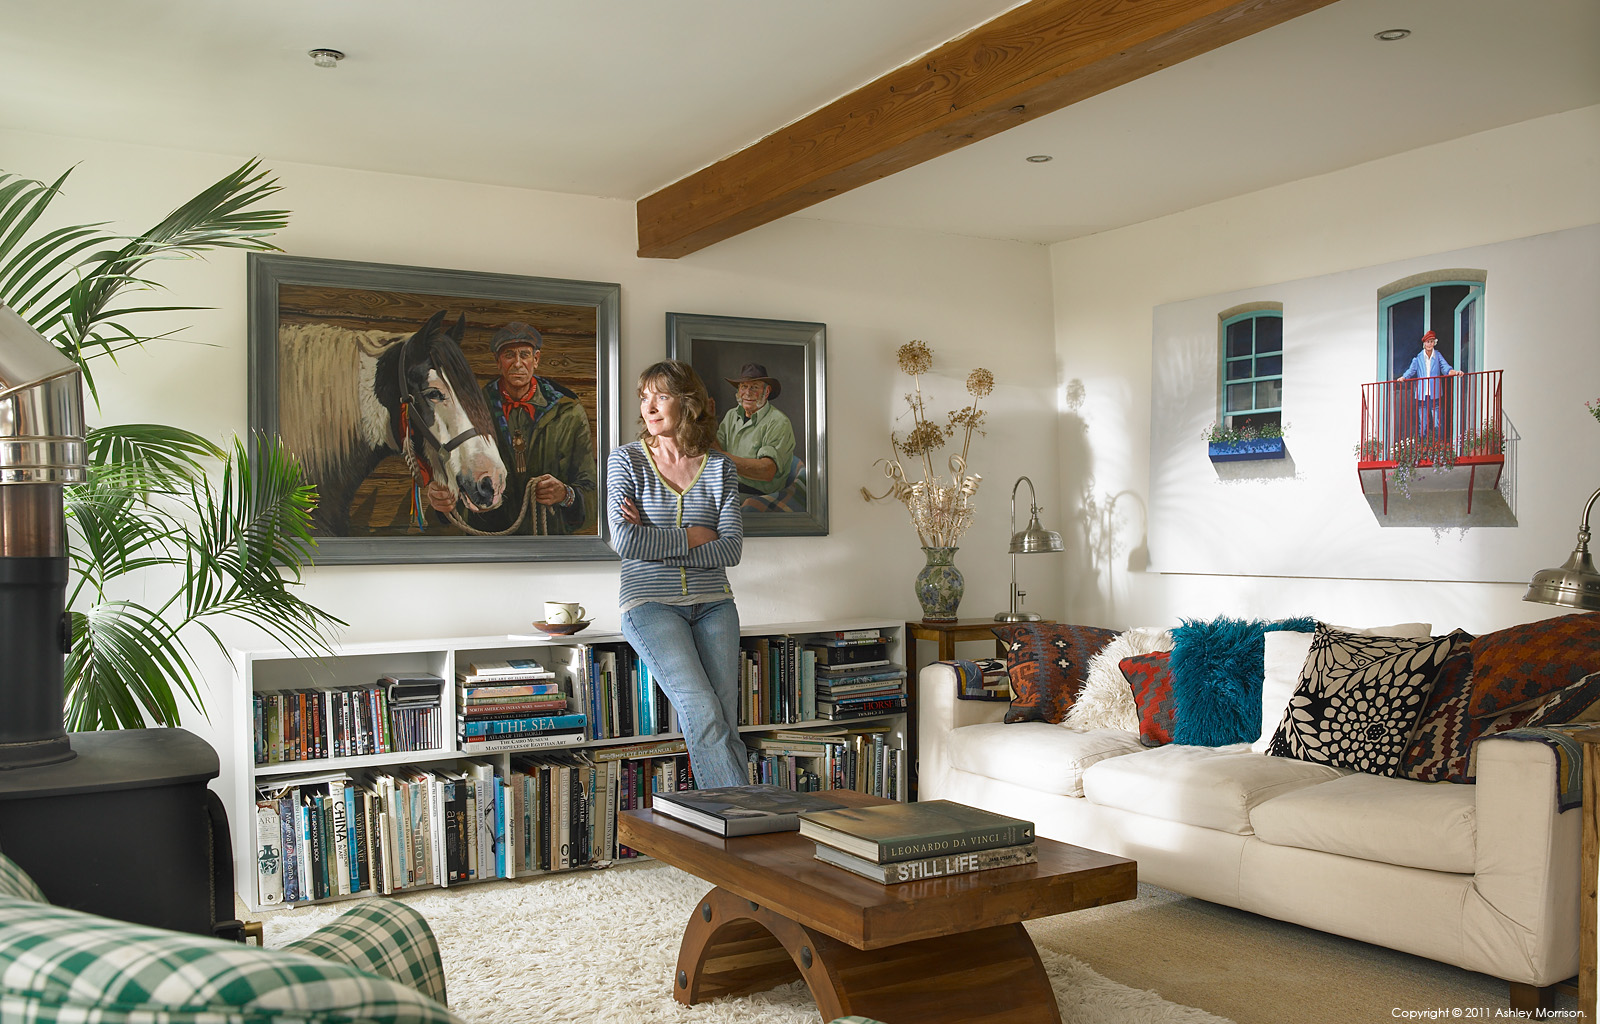 Janet Shearer in the sitting room of her converted barn near Bodmin in Cornwall by Ashley Morrison.